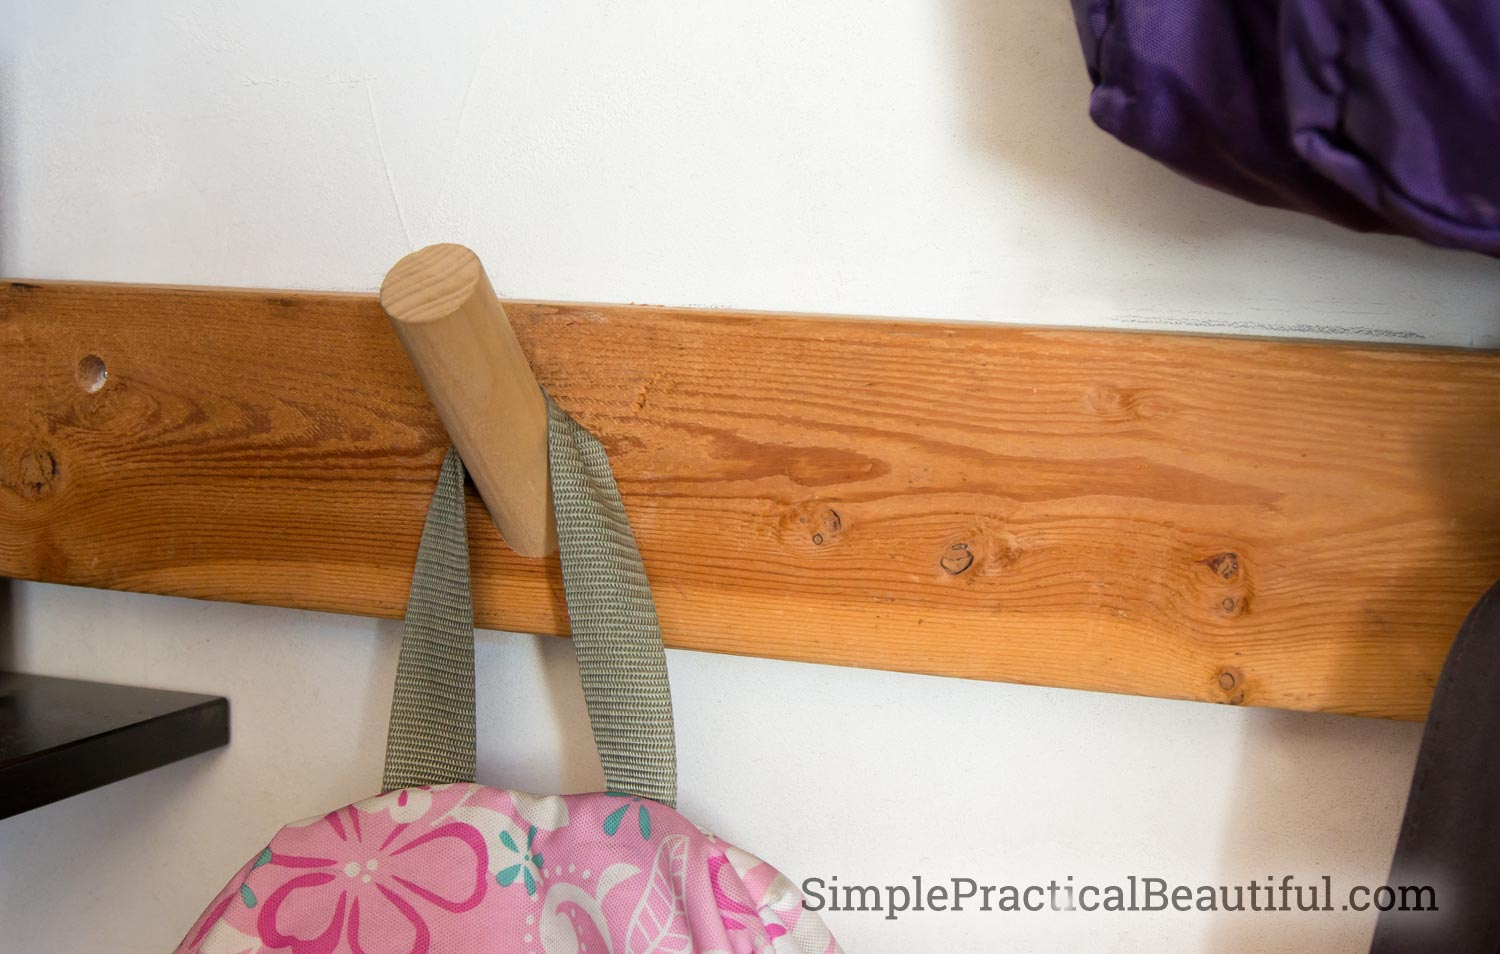 Backpack hook | SimplePracticalBeautiful.com